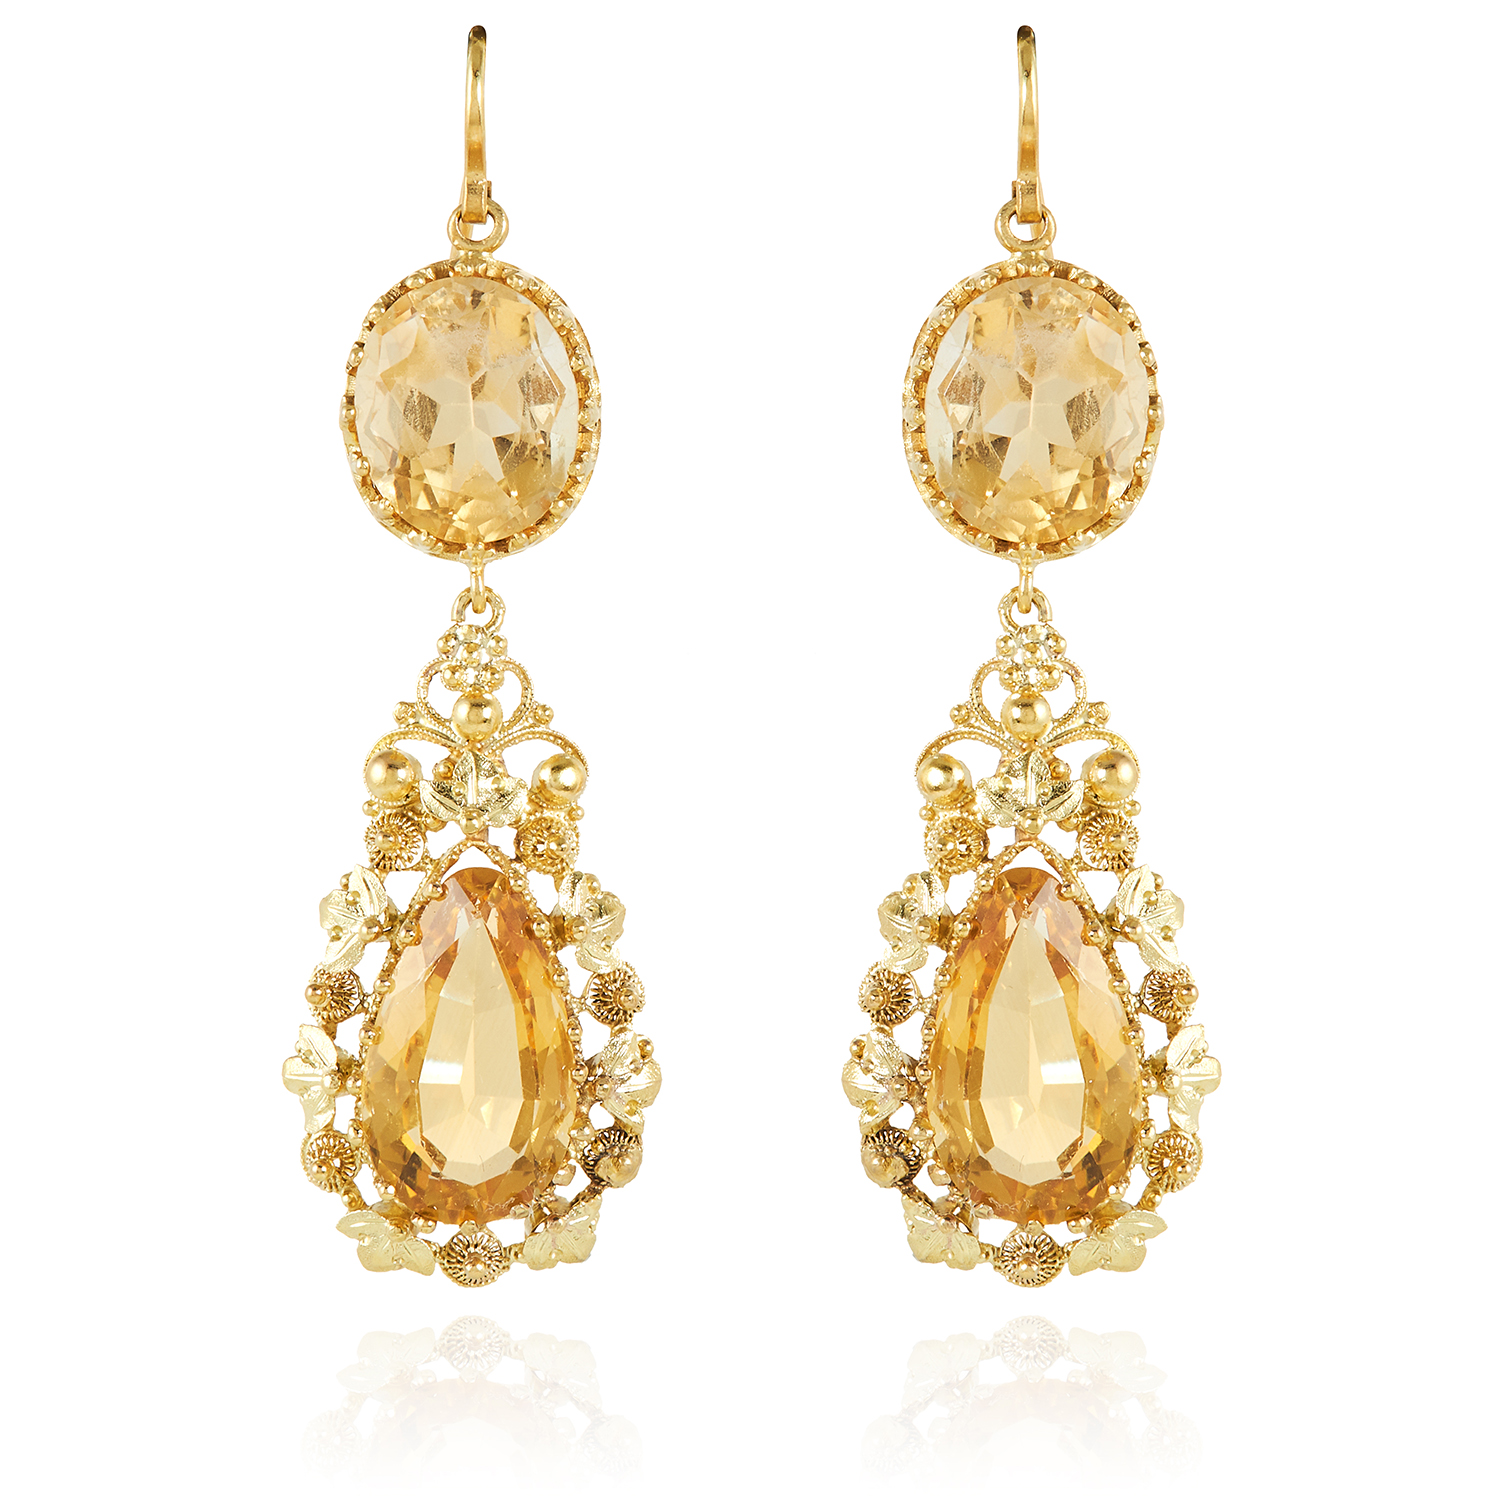 Los 6 - A PAIR OF ANTIQUE CITRINE EARRINGS in high carat yellow gold, each set with an oval cut citrine